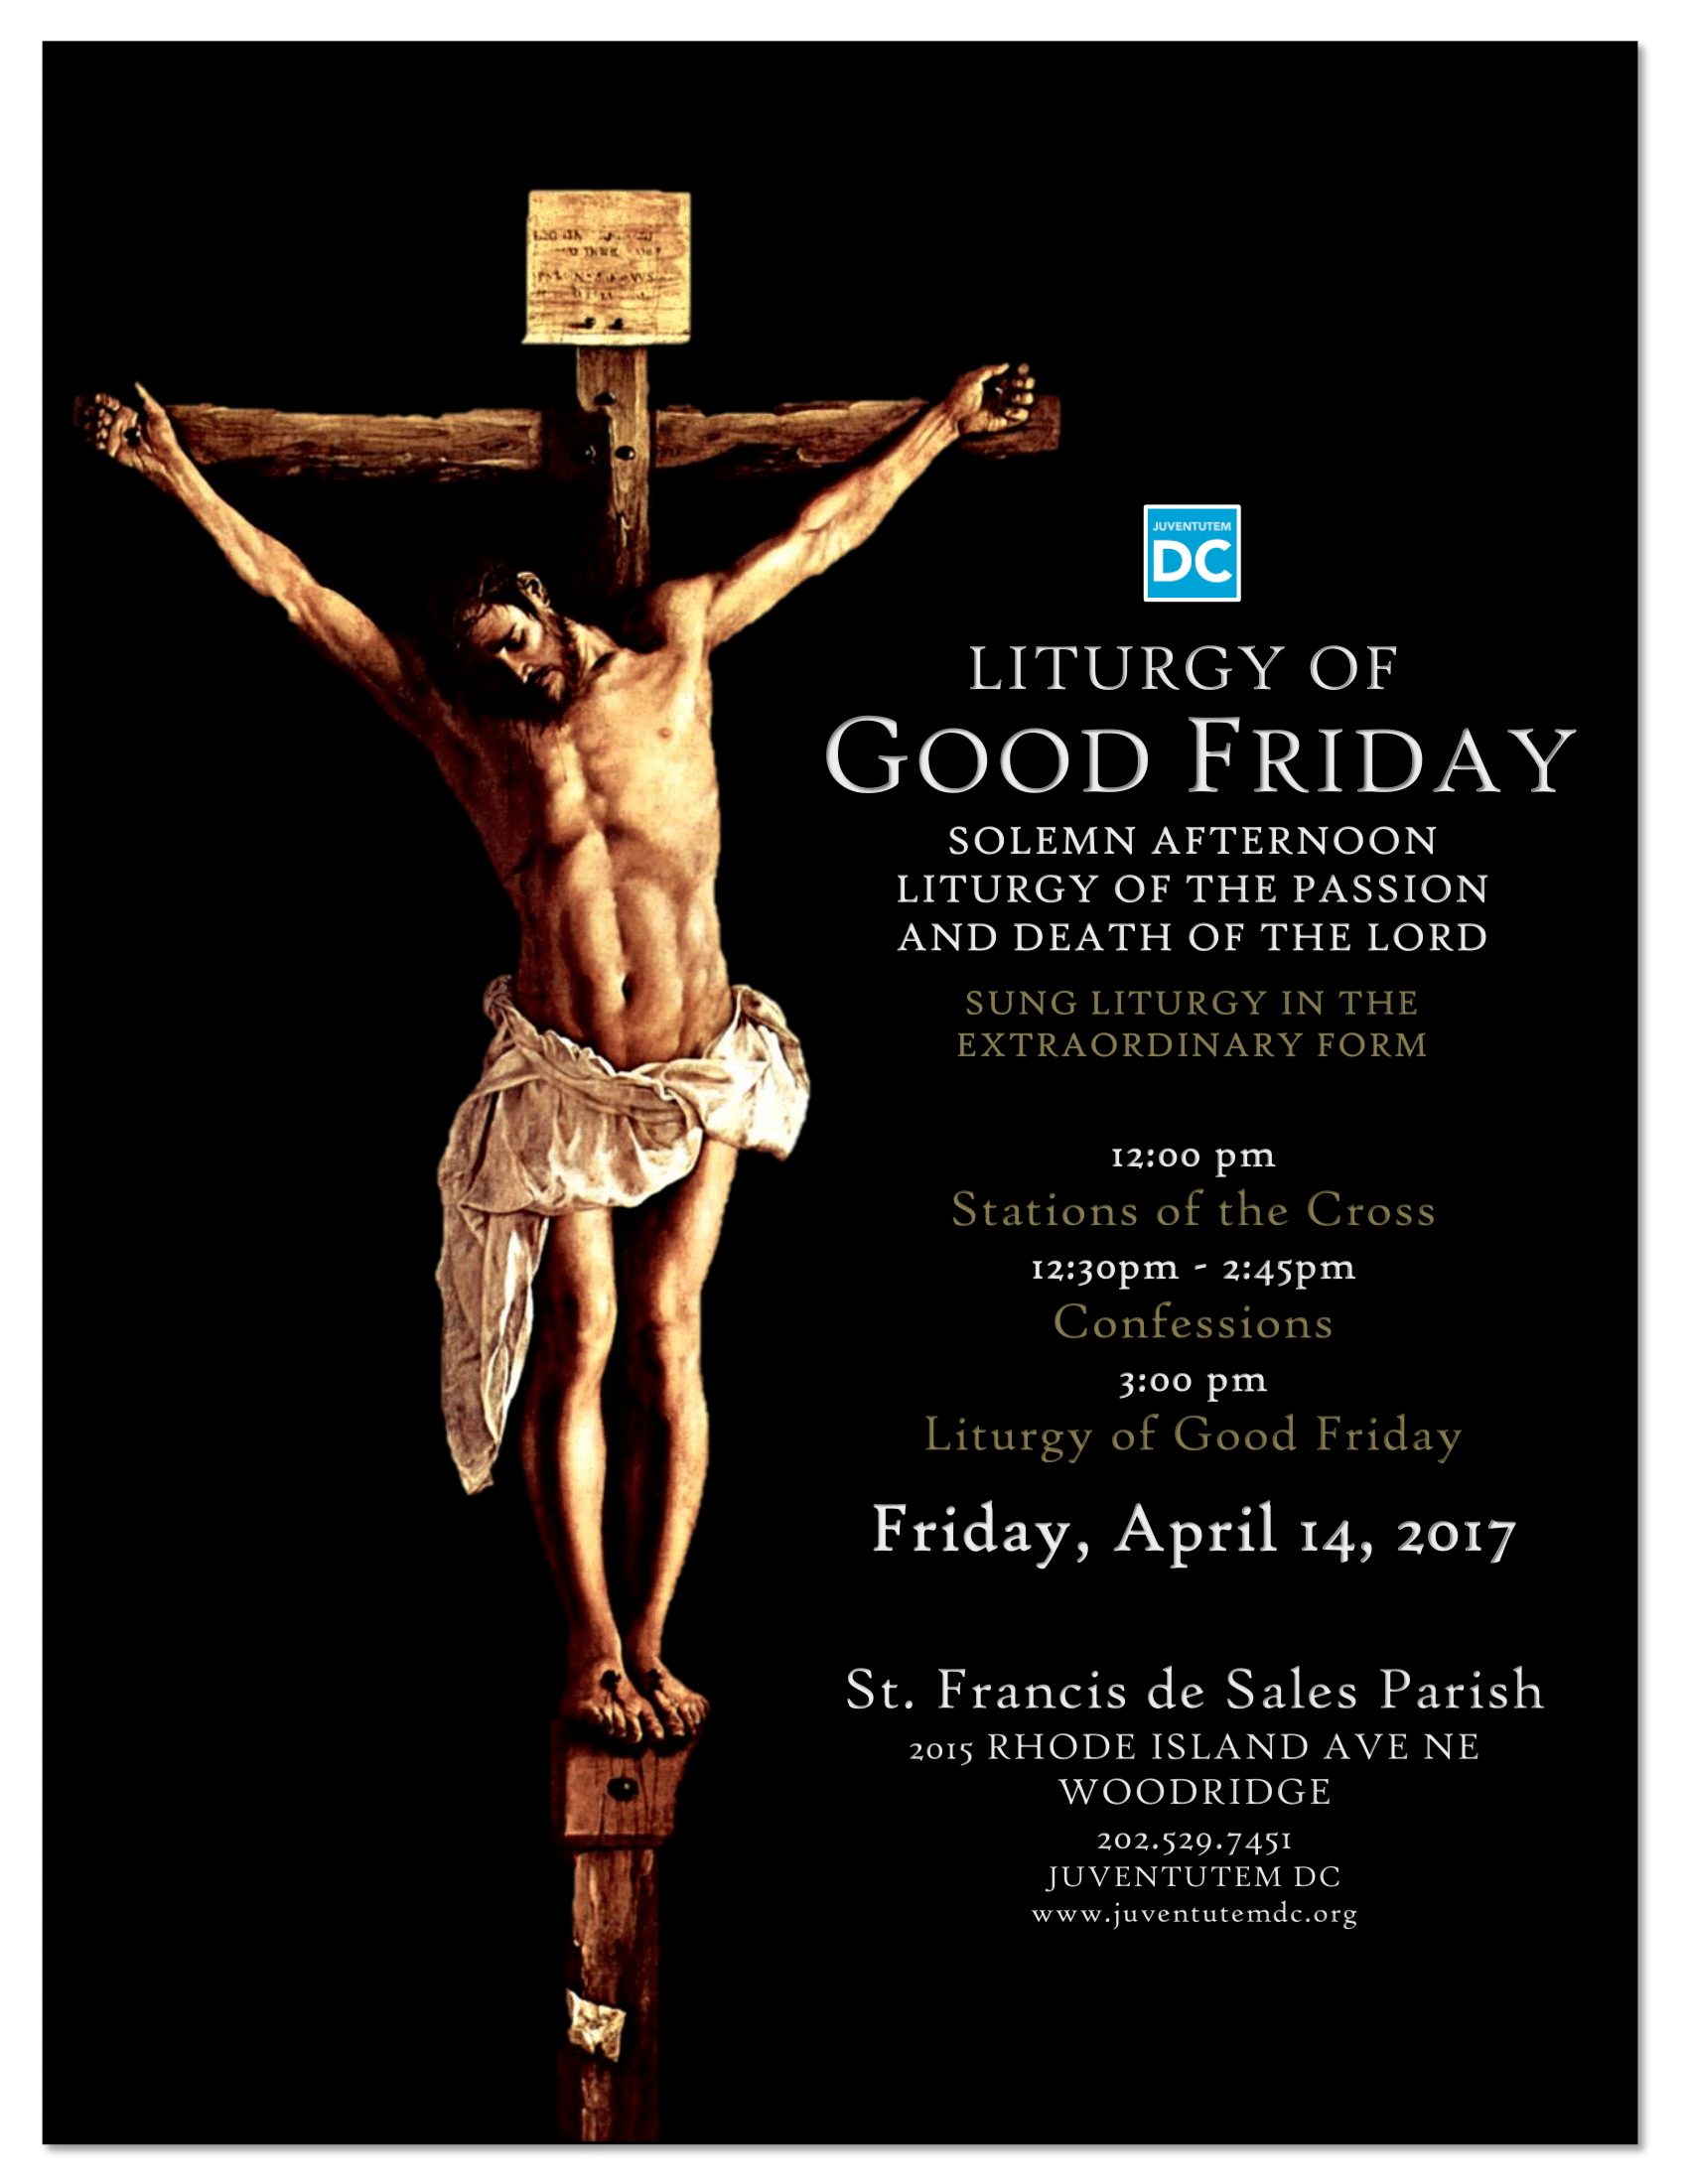 Liturgy Of Good Friday In The Extraordinary Form Friday April 14 2017 Juventutem Dc